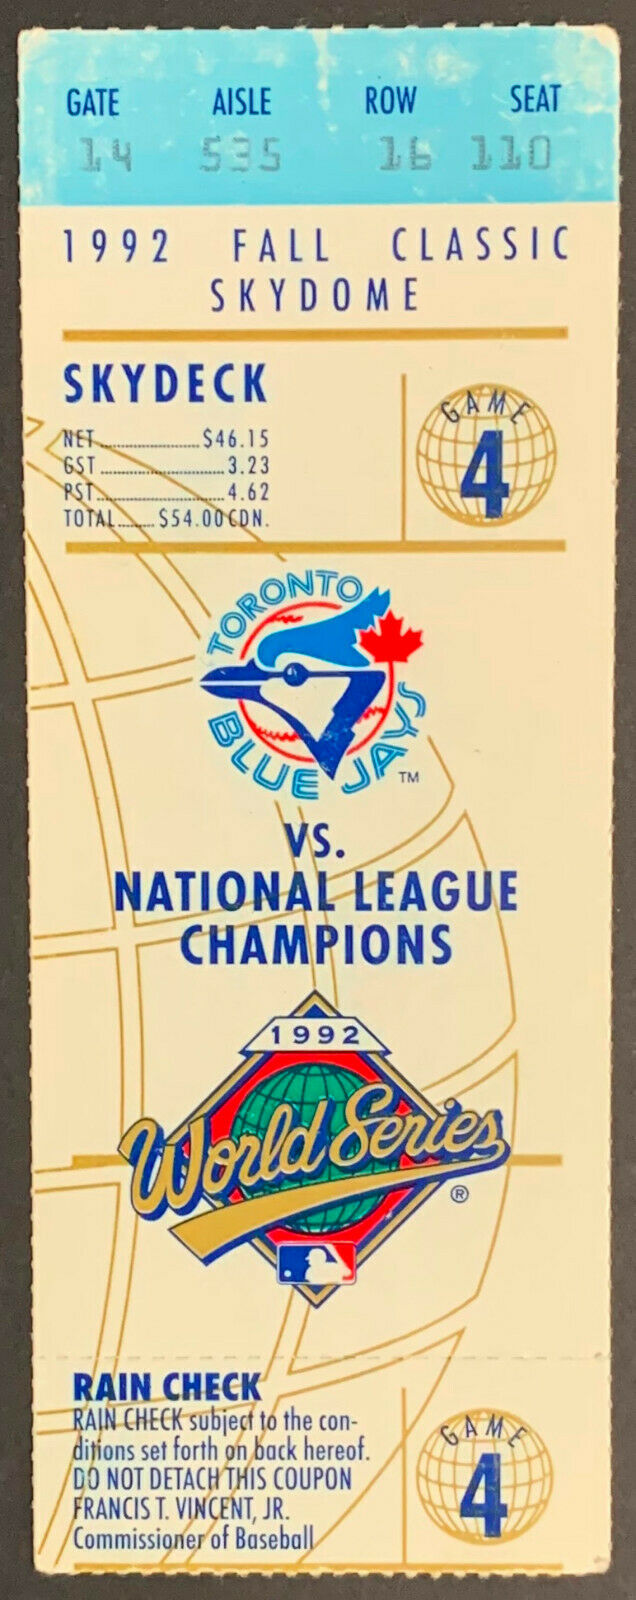 1992 SkyDome World Series Game 4 Ticket Atlanta Braves vs Toronto Blue Jays